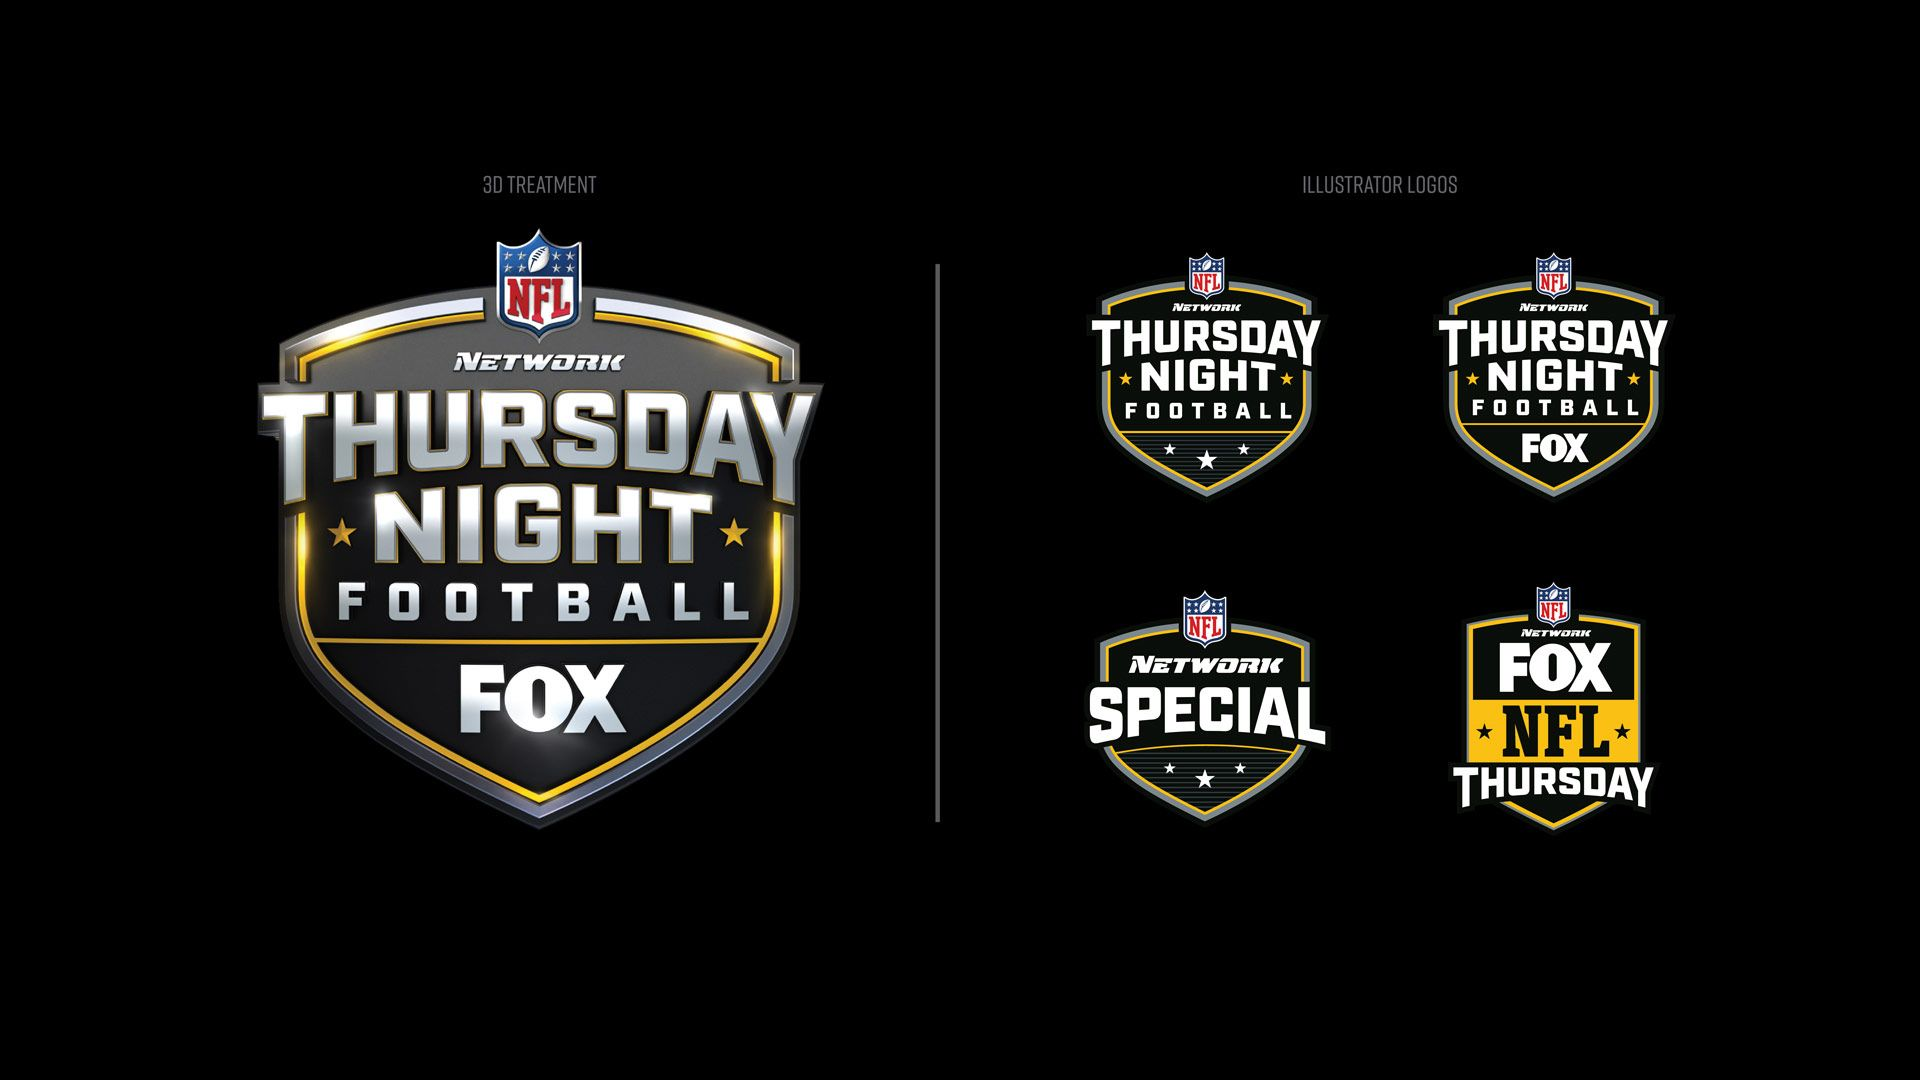 Tamirmoore Com 2019 Thursday Night Football Special Telecasts On Fox And Nfl Network Schedule